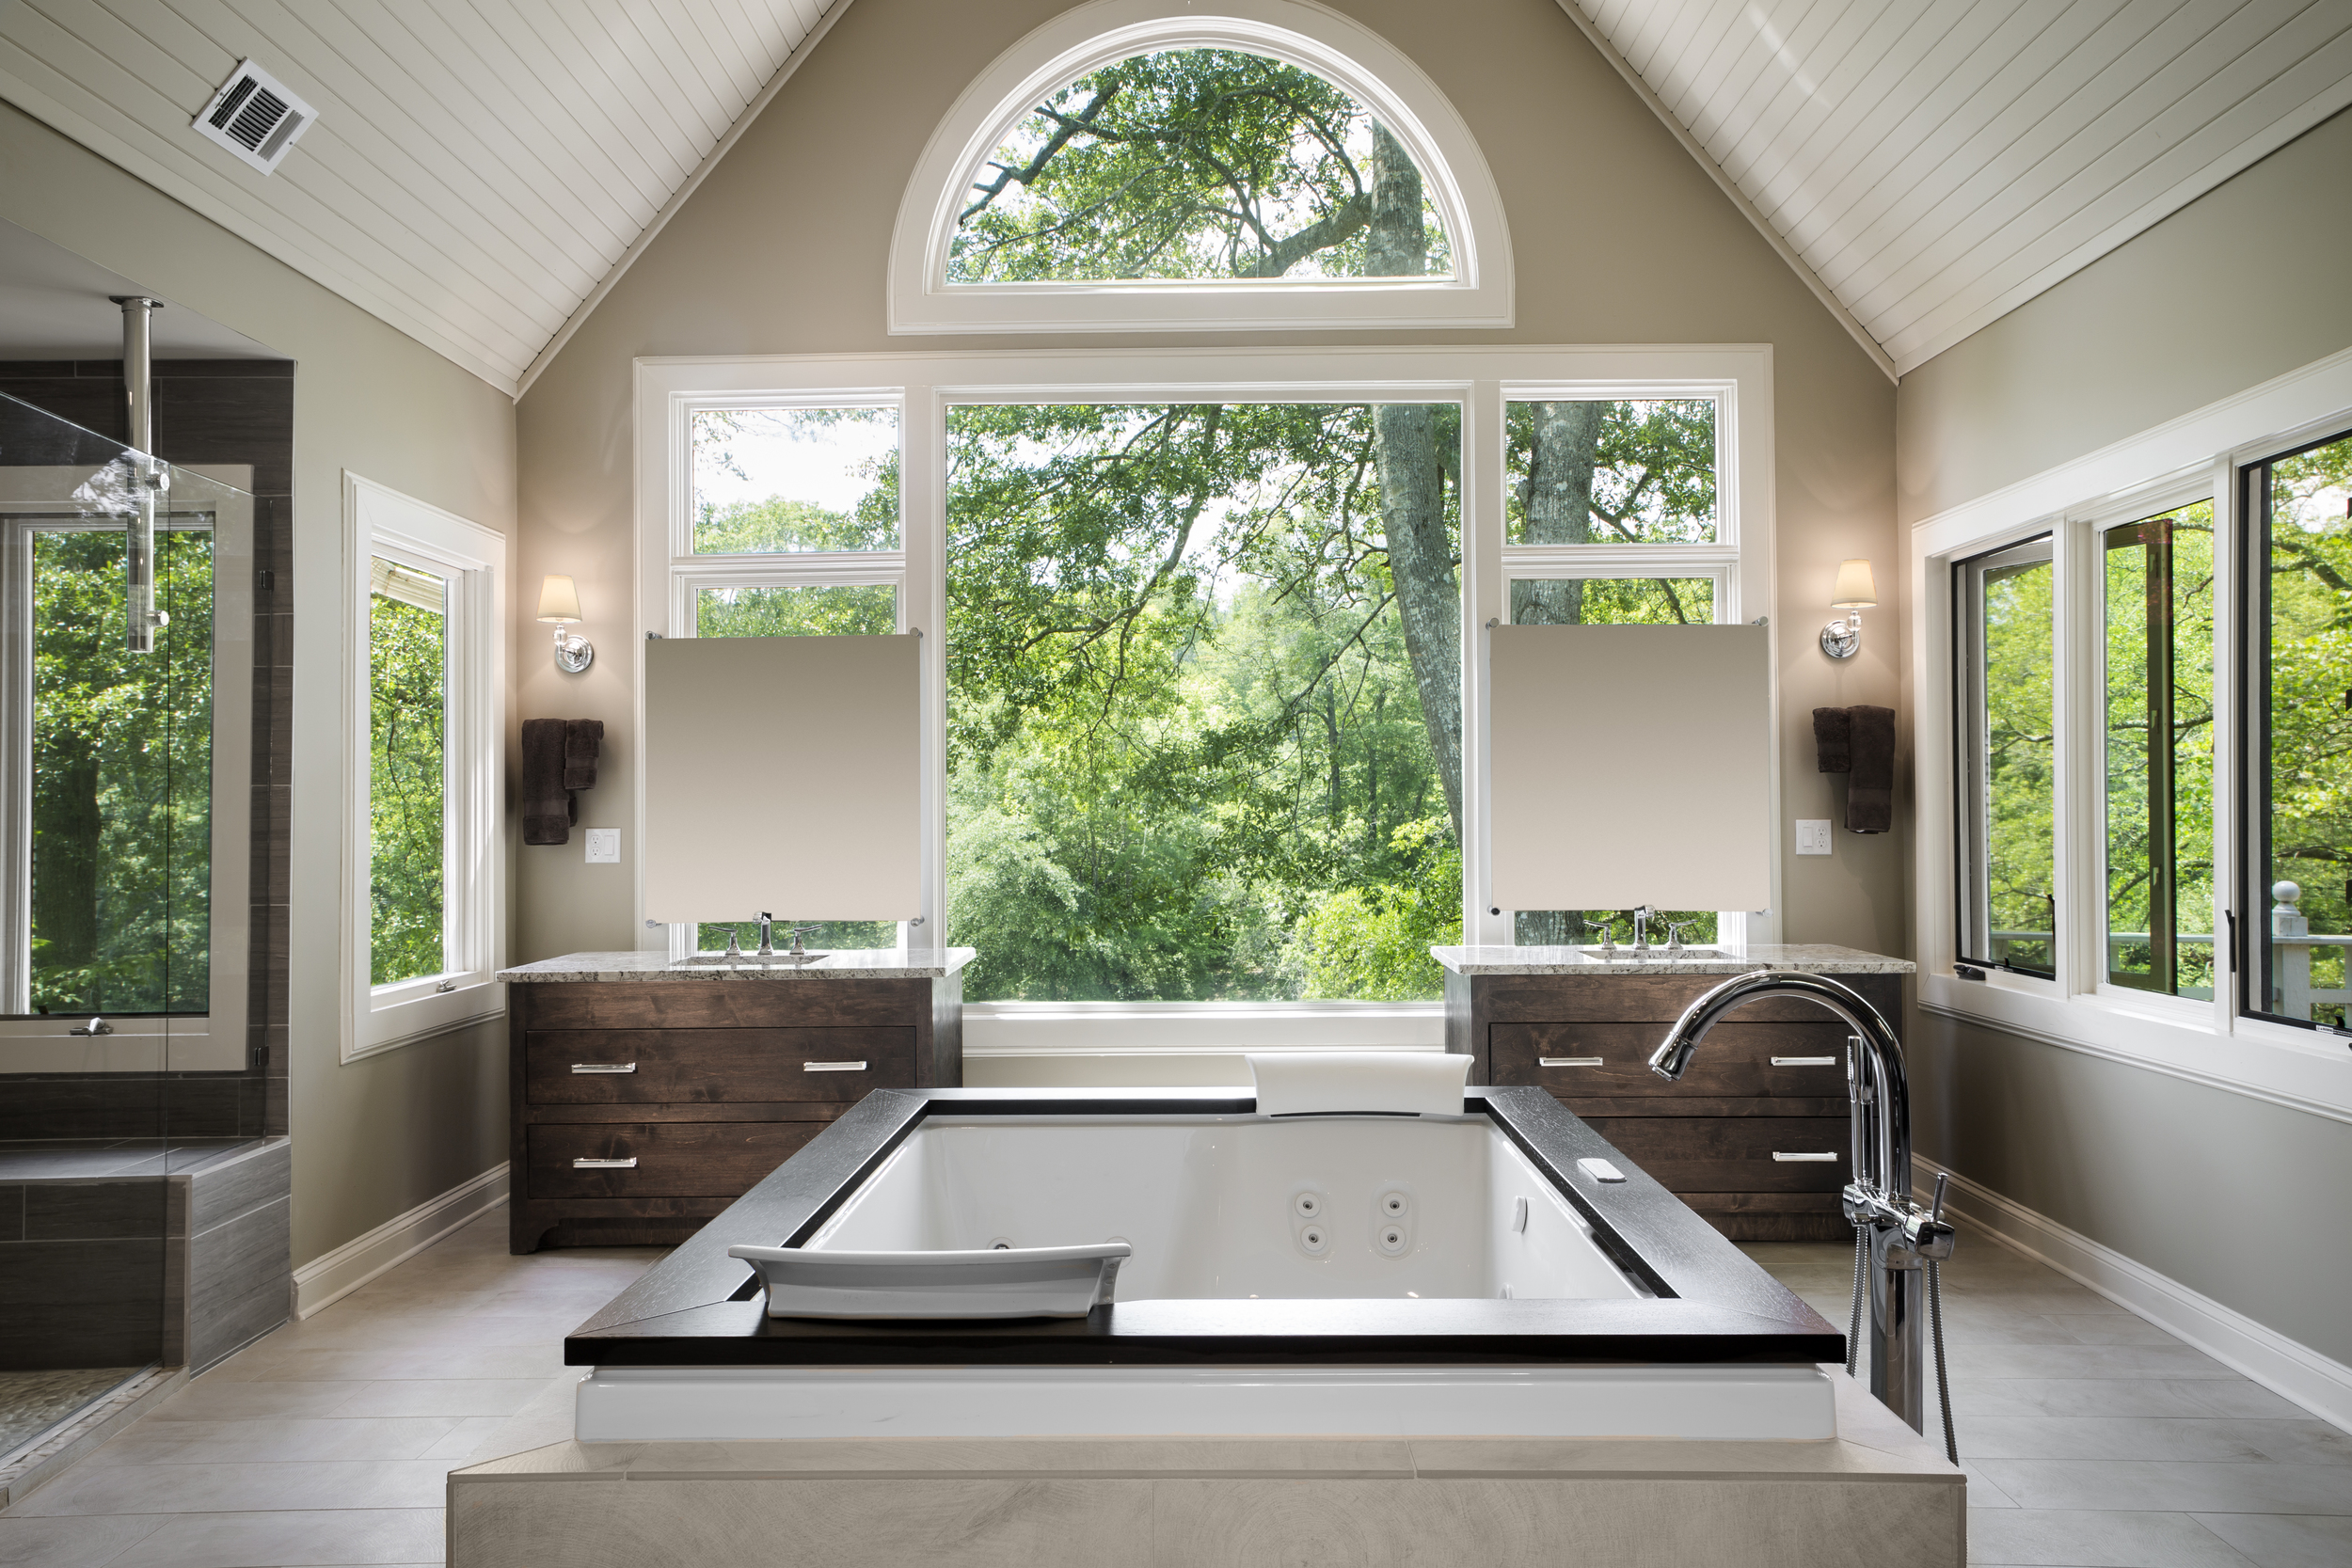 Winner of Angie's List Best Bathroom Remodel for Direct Build Home Improvement